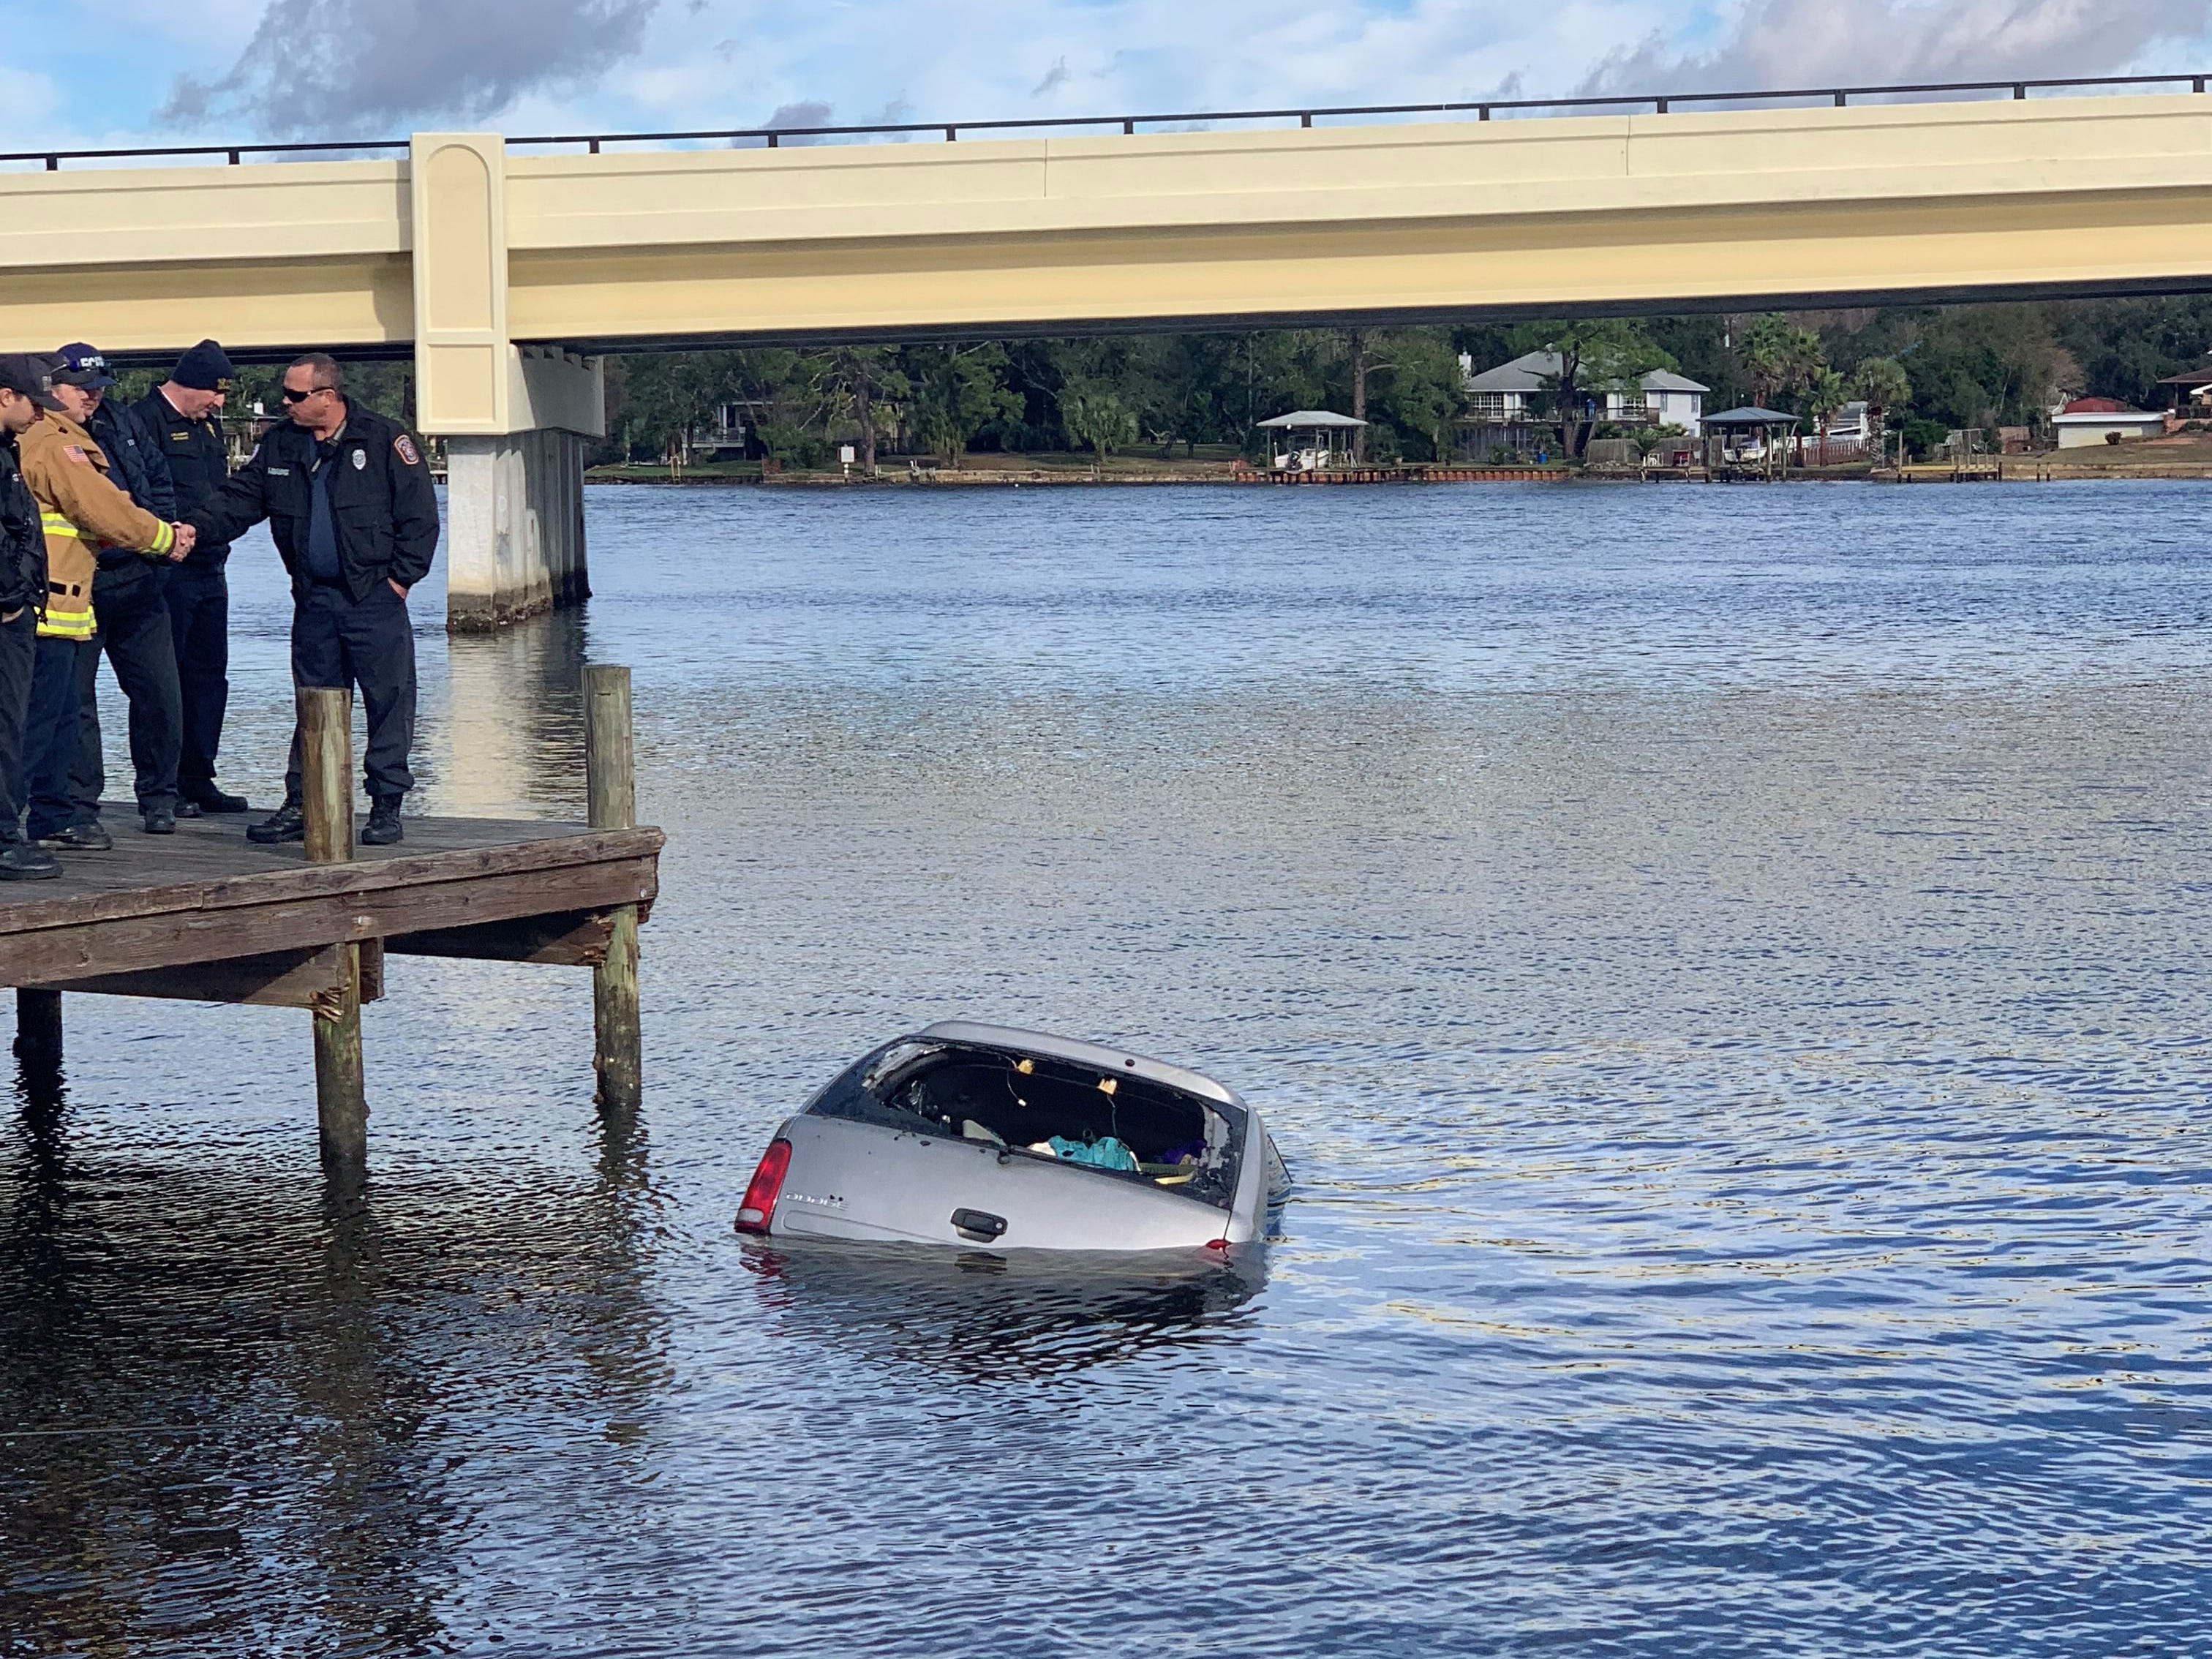 Authorities investigate a submerged vehicle found at the Navy Point Boat Ramp on Friday morning. Officials did not find any bodies in or around the car.